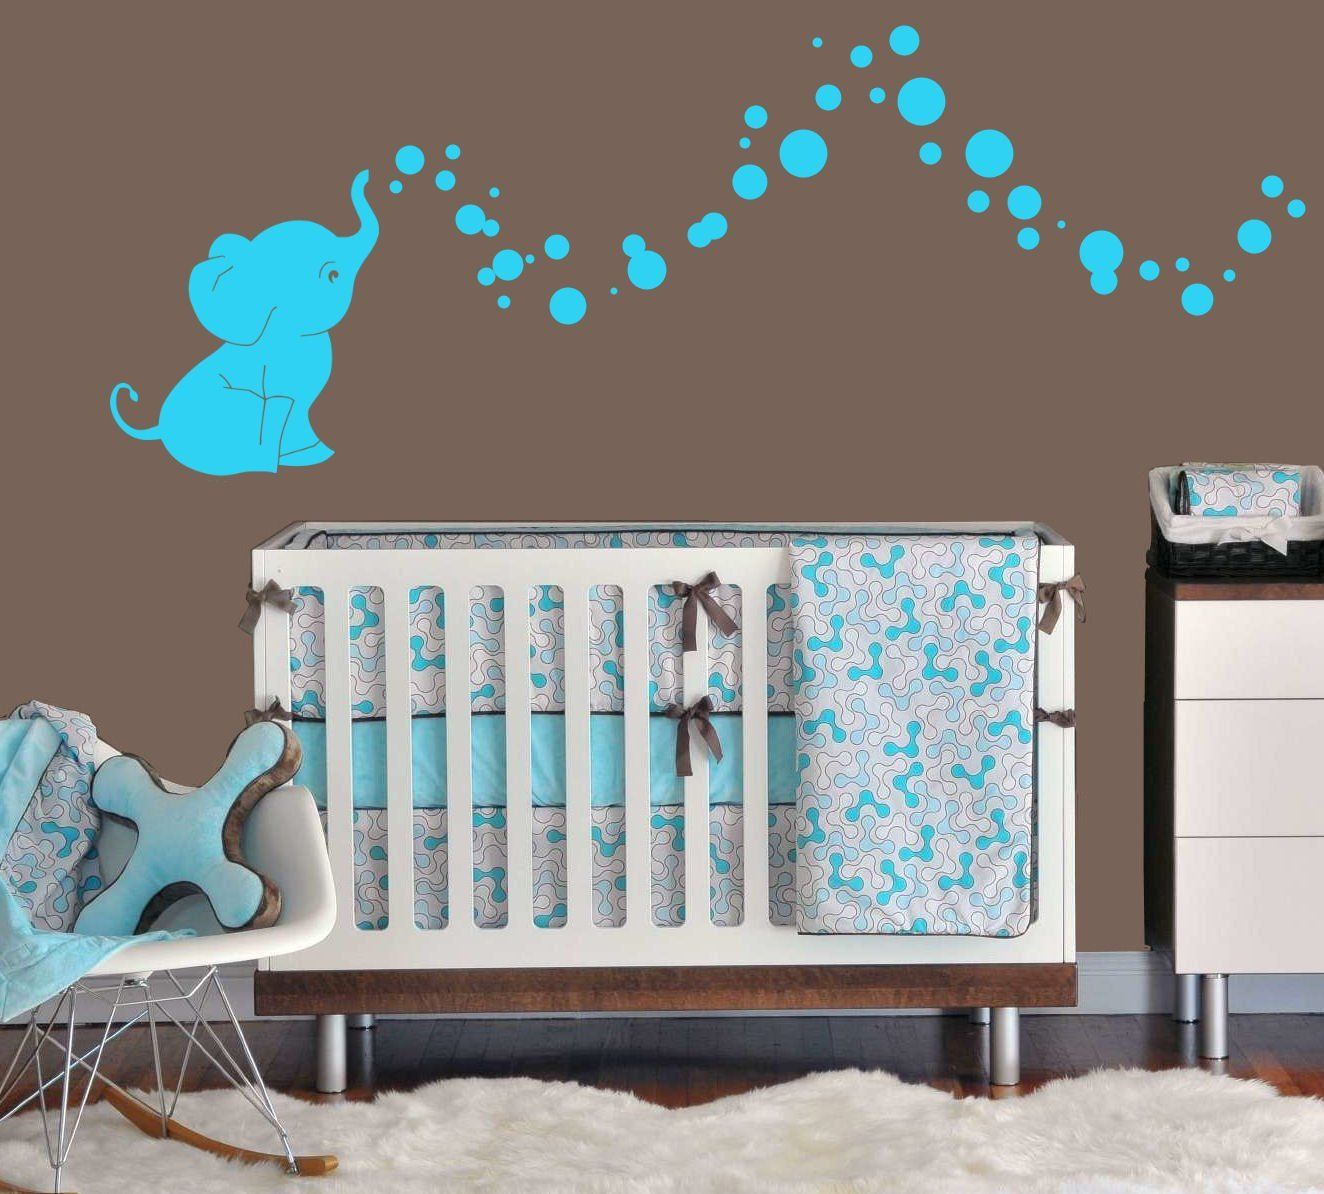 Nursery Wall Decor Set : Elephant bubbles nursery wall decal set great shower gift